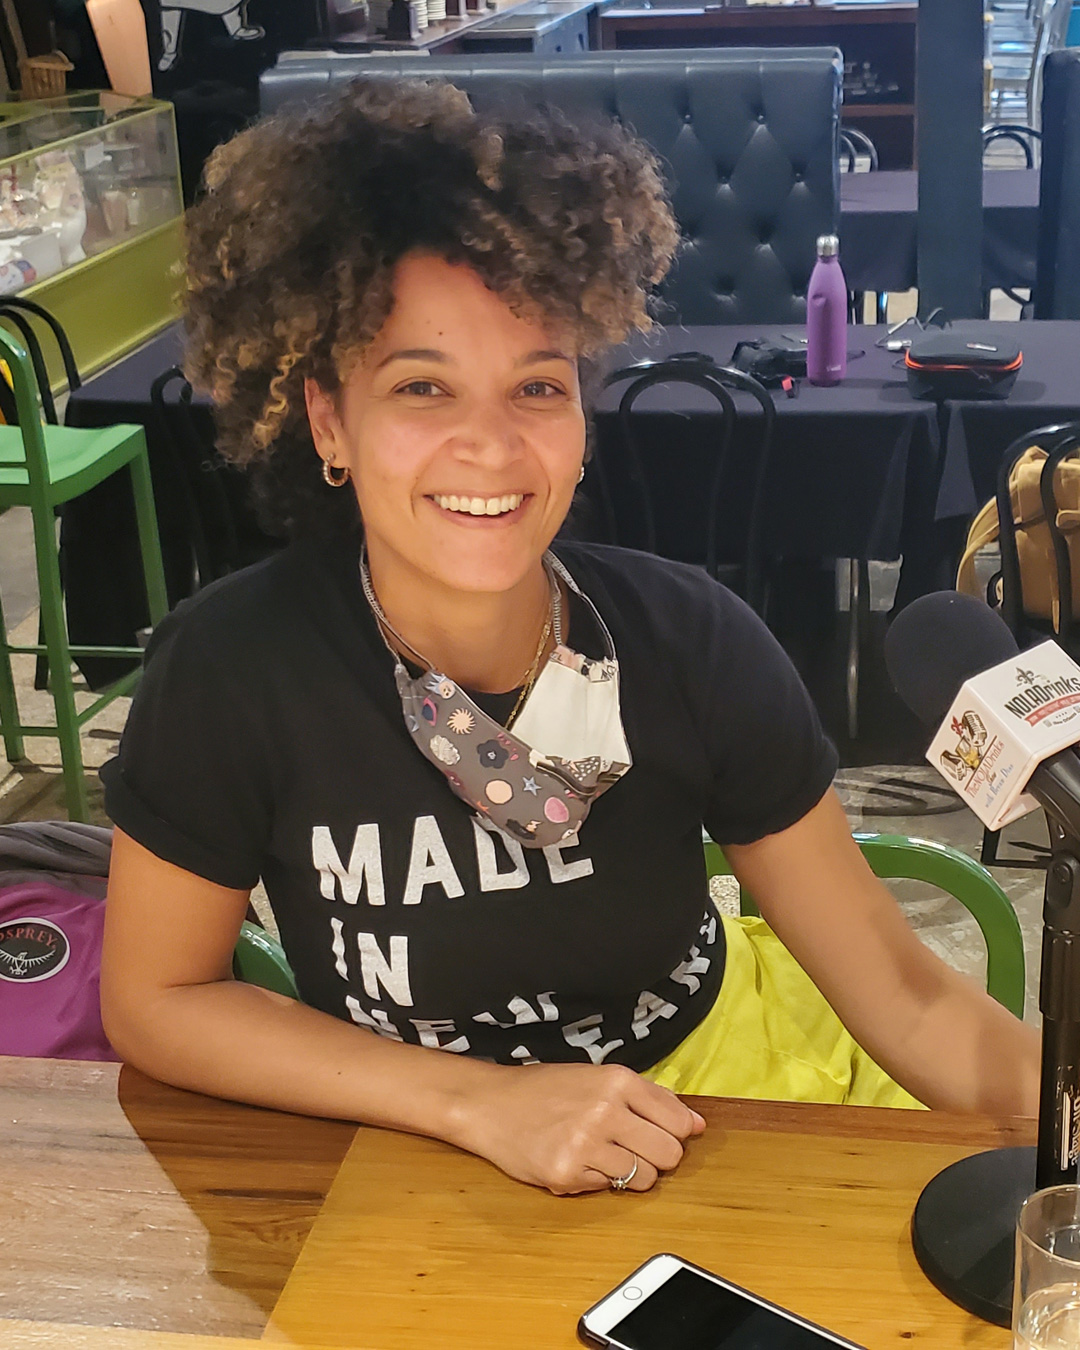 NOLADrinks Show – Systemic Racism in the Hospitality Industry – Jun20Ep2 – Lauren Darnell of the Made in New Orleans Foundation at the Southern Food and Beverage Museum.